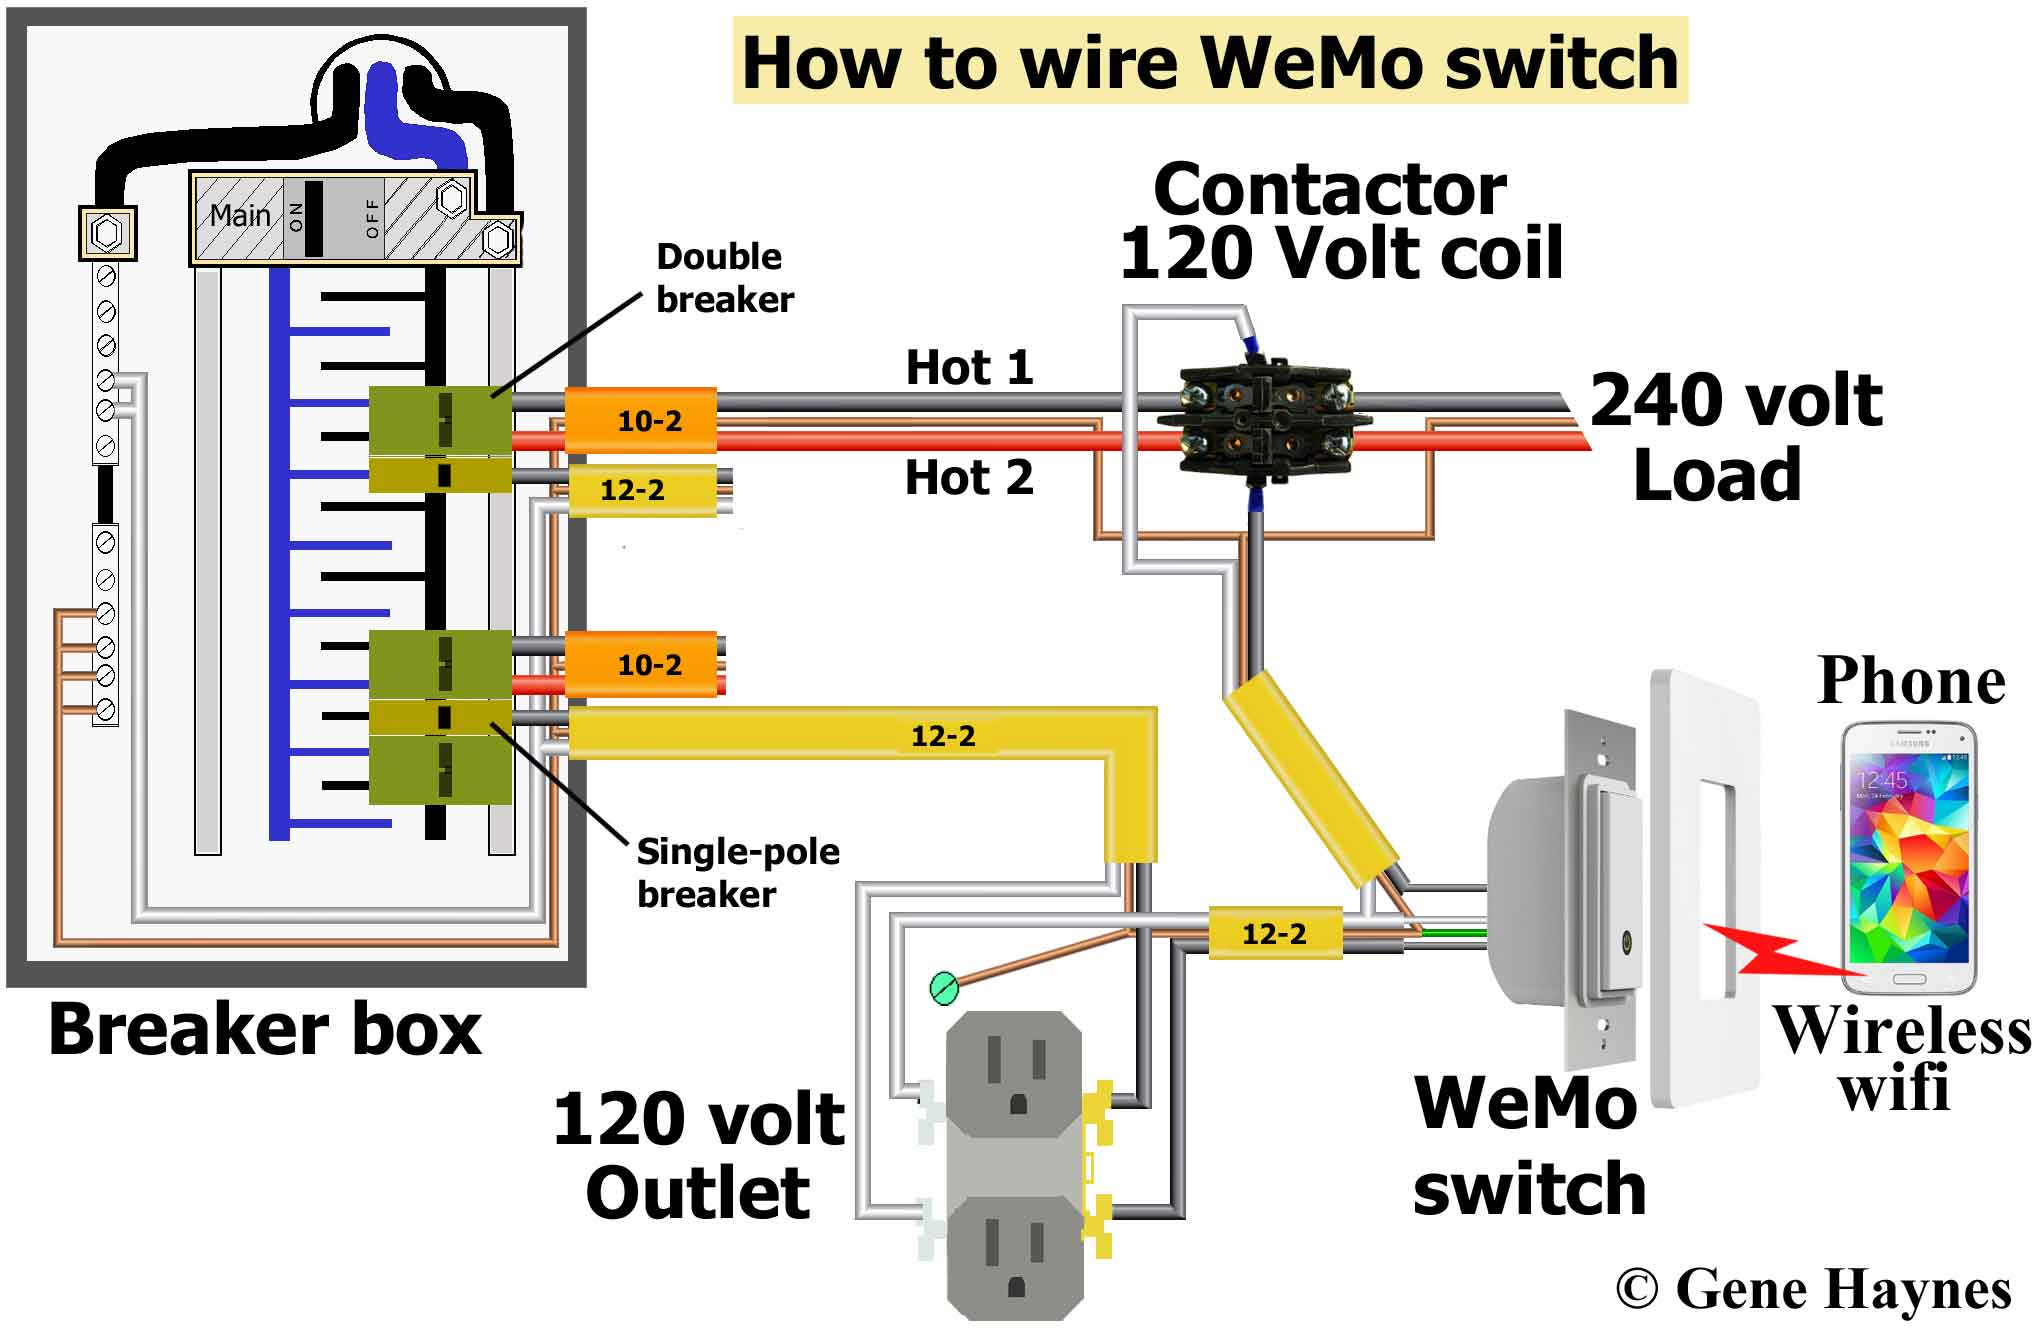 delay timer for motor or pump 120volt to 240volt 240 Volt Switch Wiring Diagram do not use stranded wire under screw plates buy from my affiliate links wemo switch � contactor with 120 volt coil